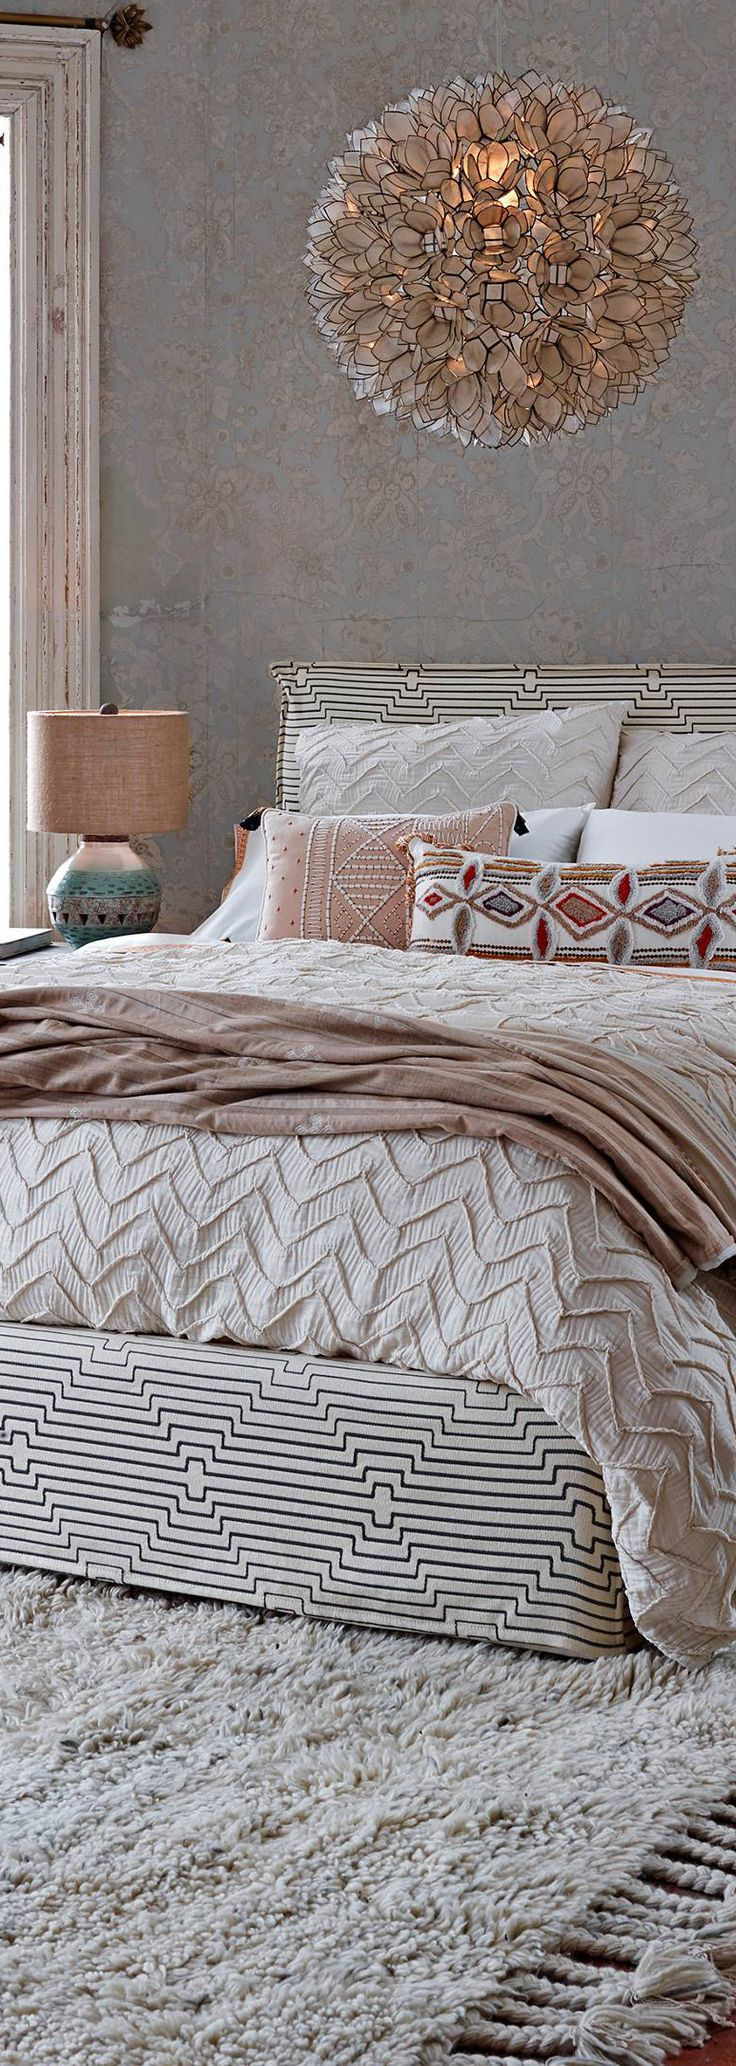 Textured Chevron Duvet Cover #manchesterwarehouse